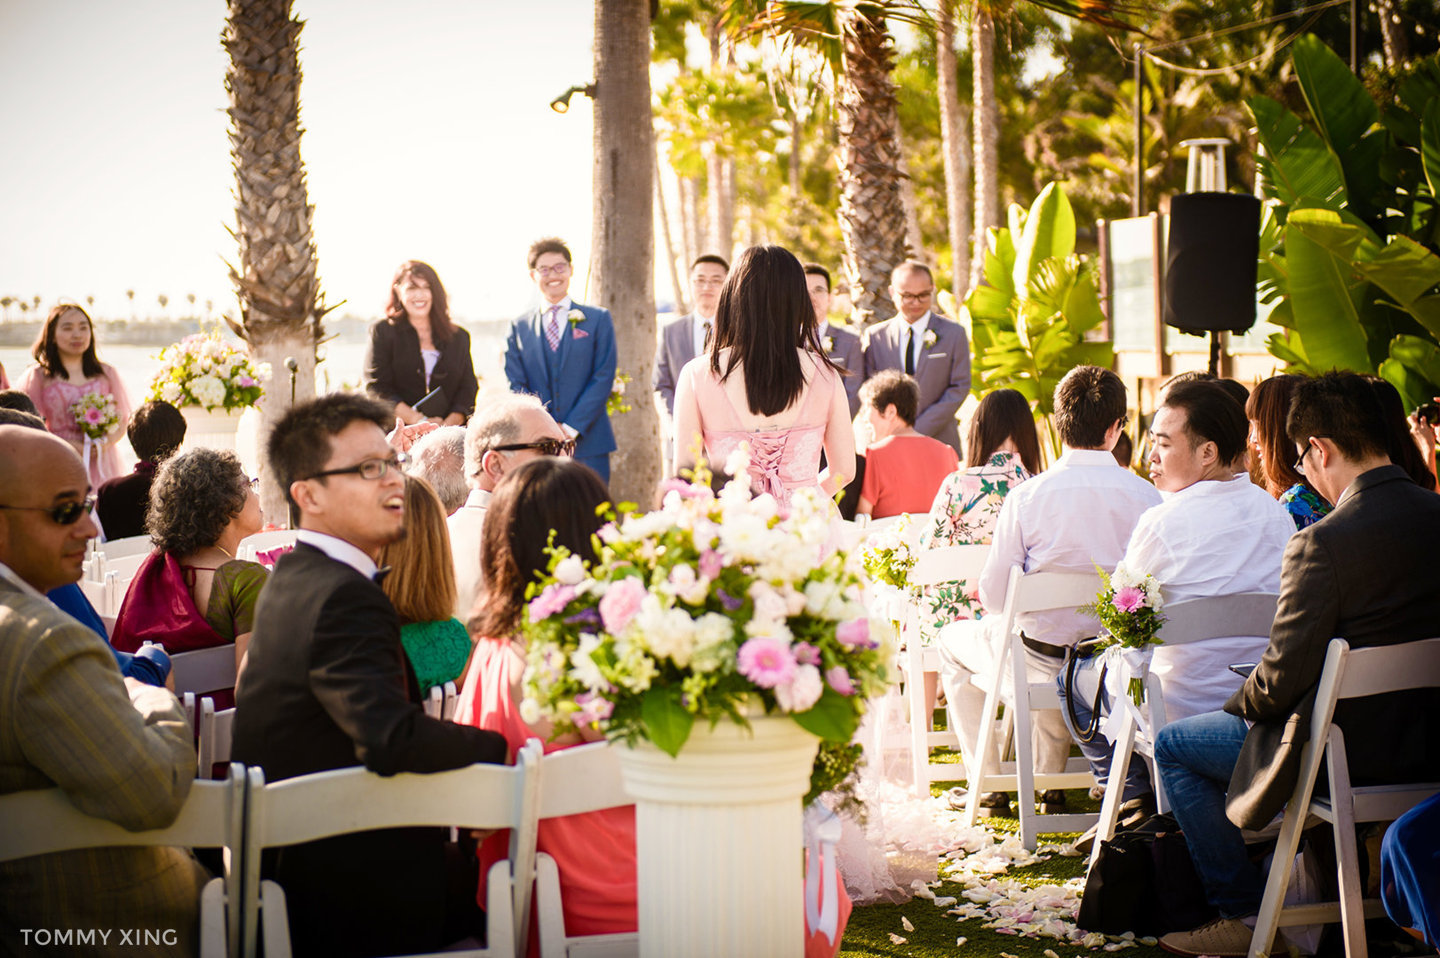 Paradise Point Resort Wedding Xiaolu & Bin San Diego 圣地亚哥婚礼摄影跟拍 Tommy Xing Photography 洛杉矶婚礼婚纱照摄影师 096.jpg